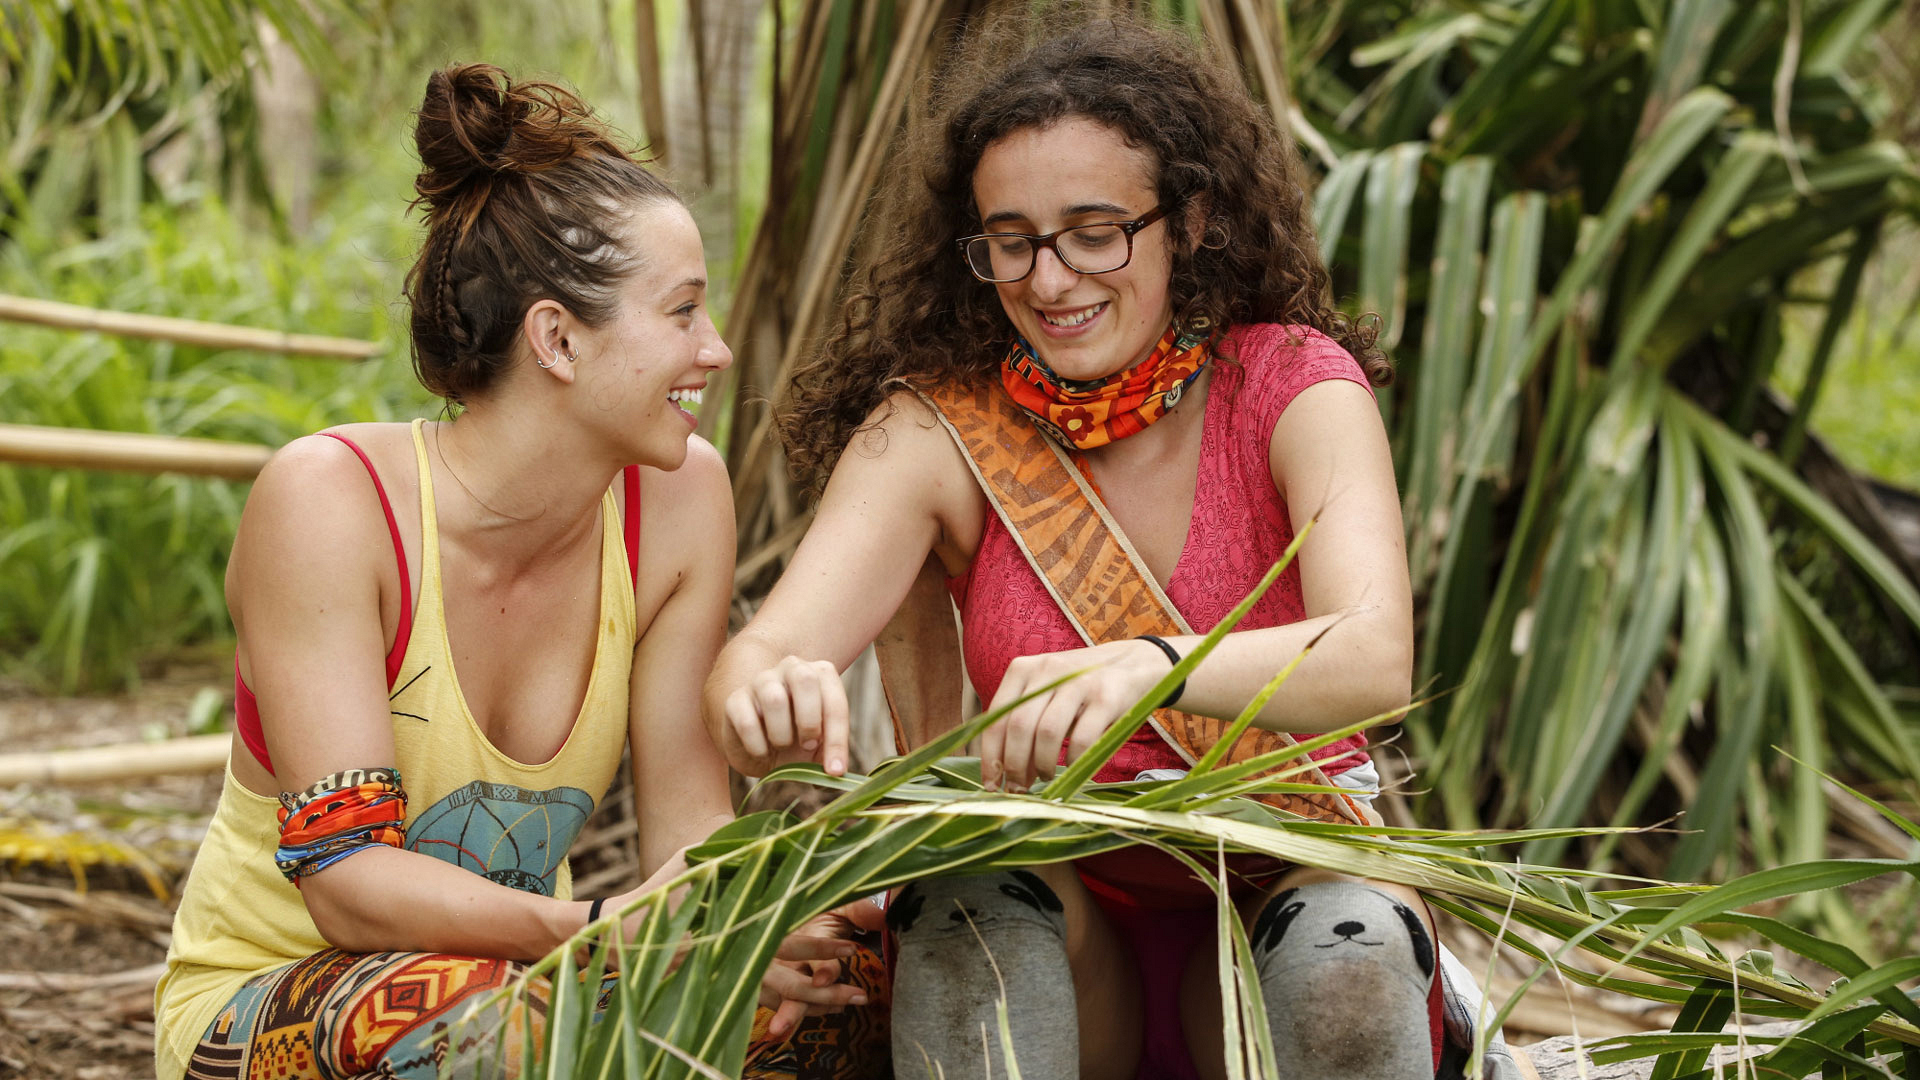 Millennials Michelle Schubert and Hannah Shapiro get to know each other while weaving fronds.